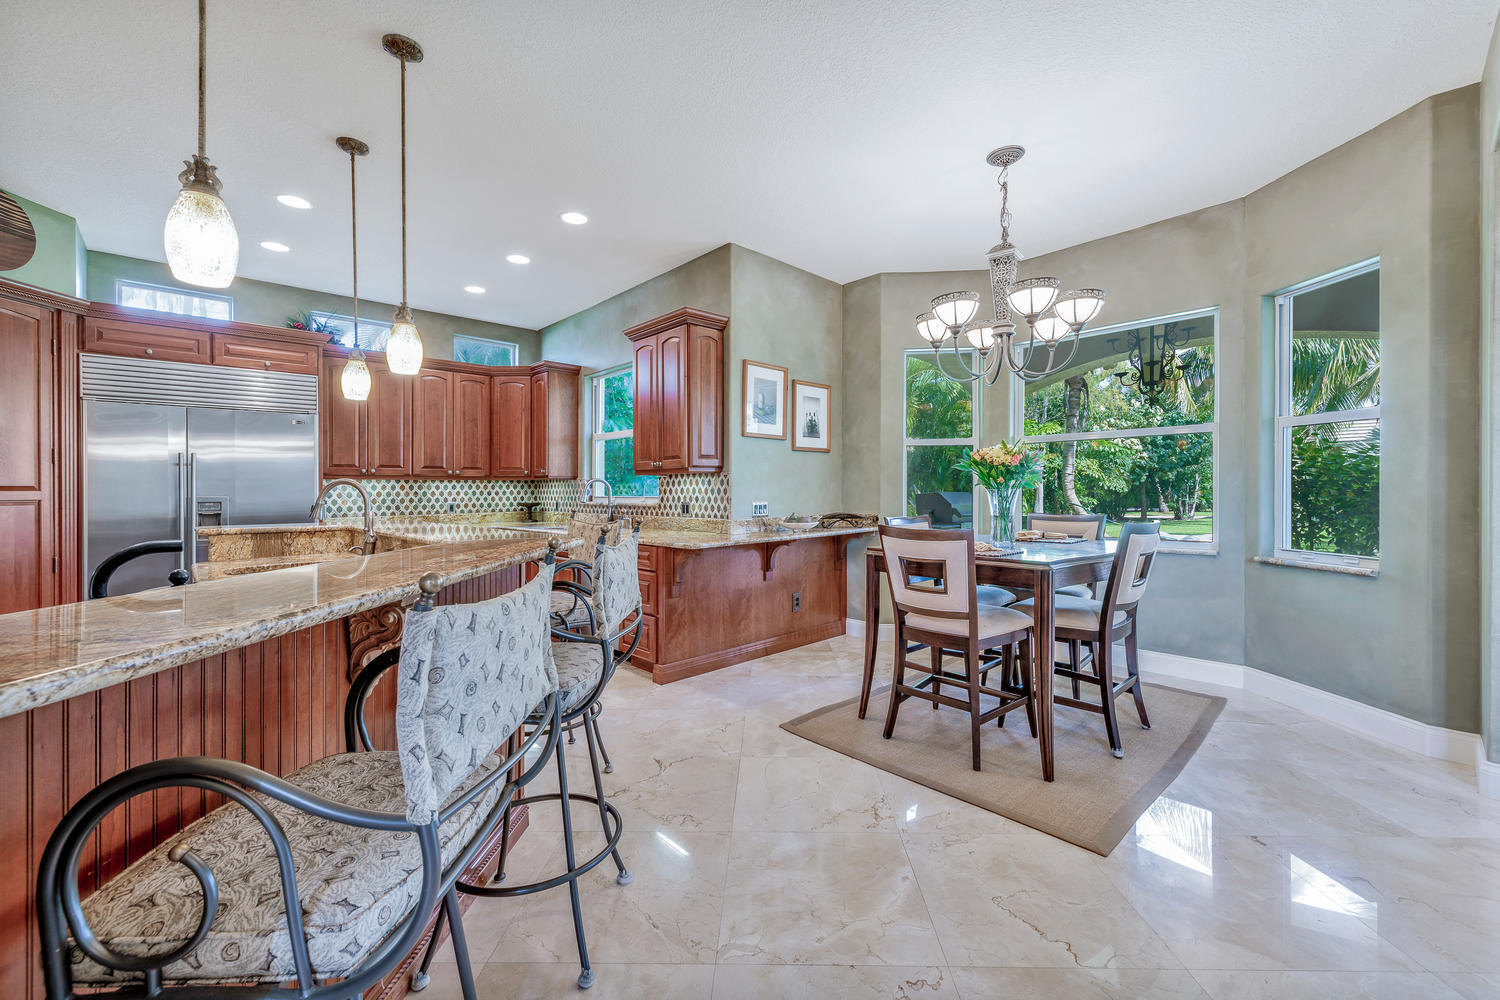 14235 Equestrian Way-large-016-23-Kitche